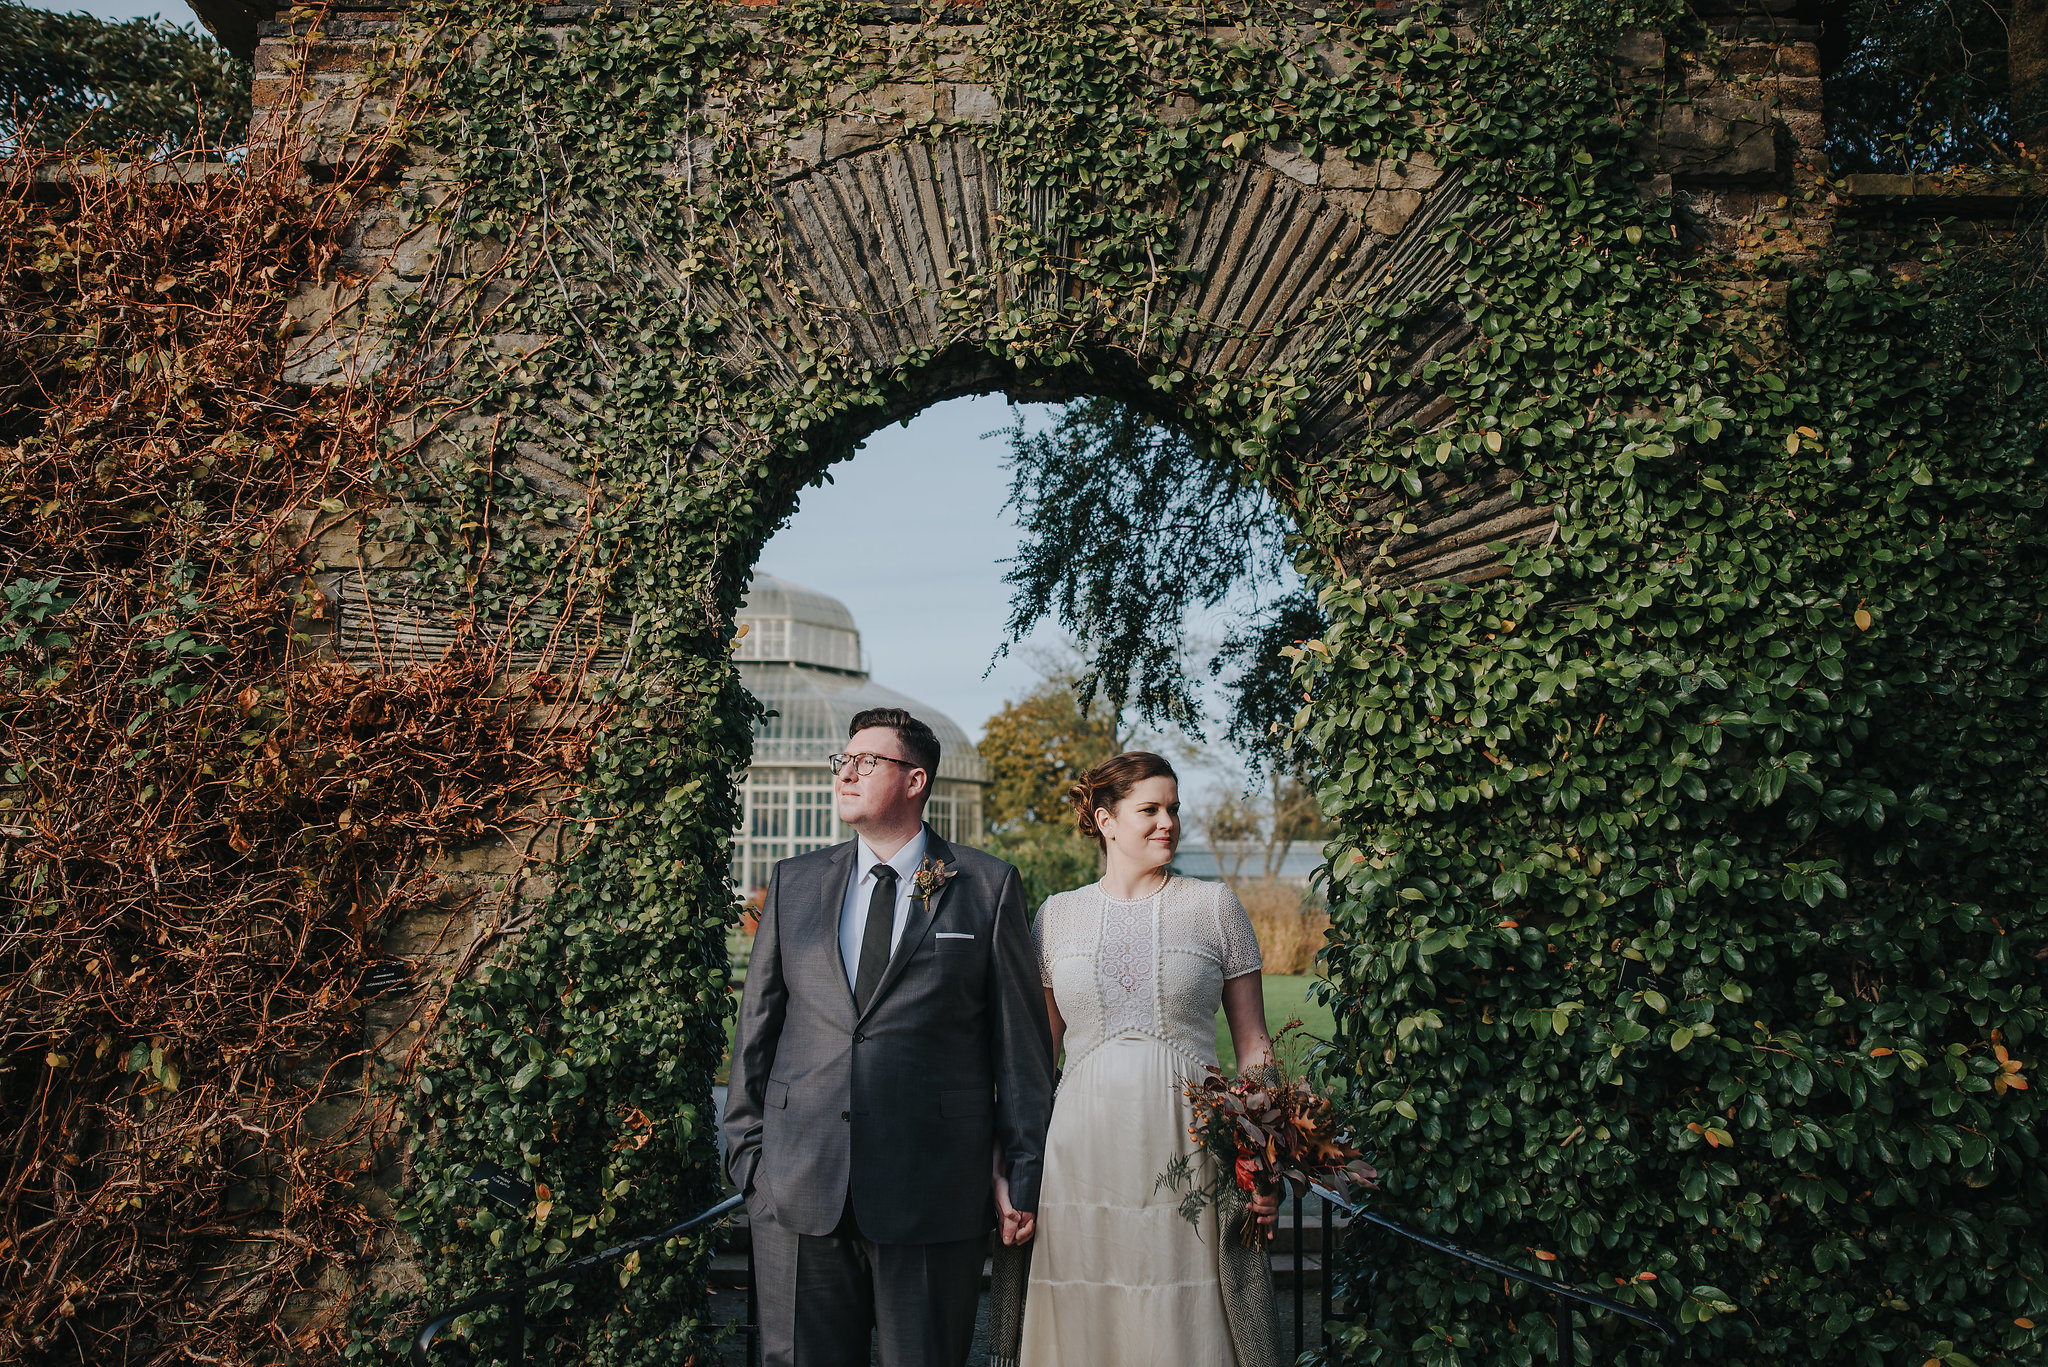 Bride and groom standing in archway at Botanic Gardens